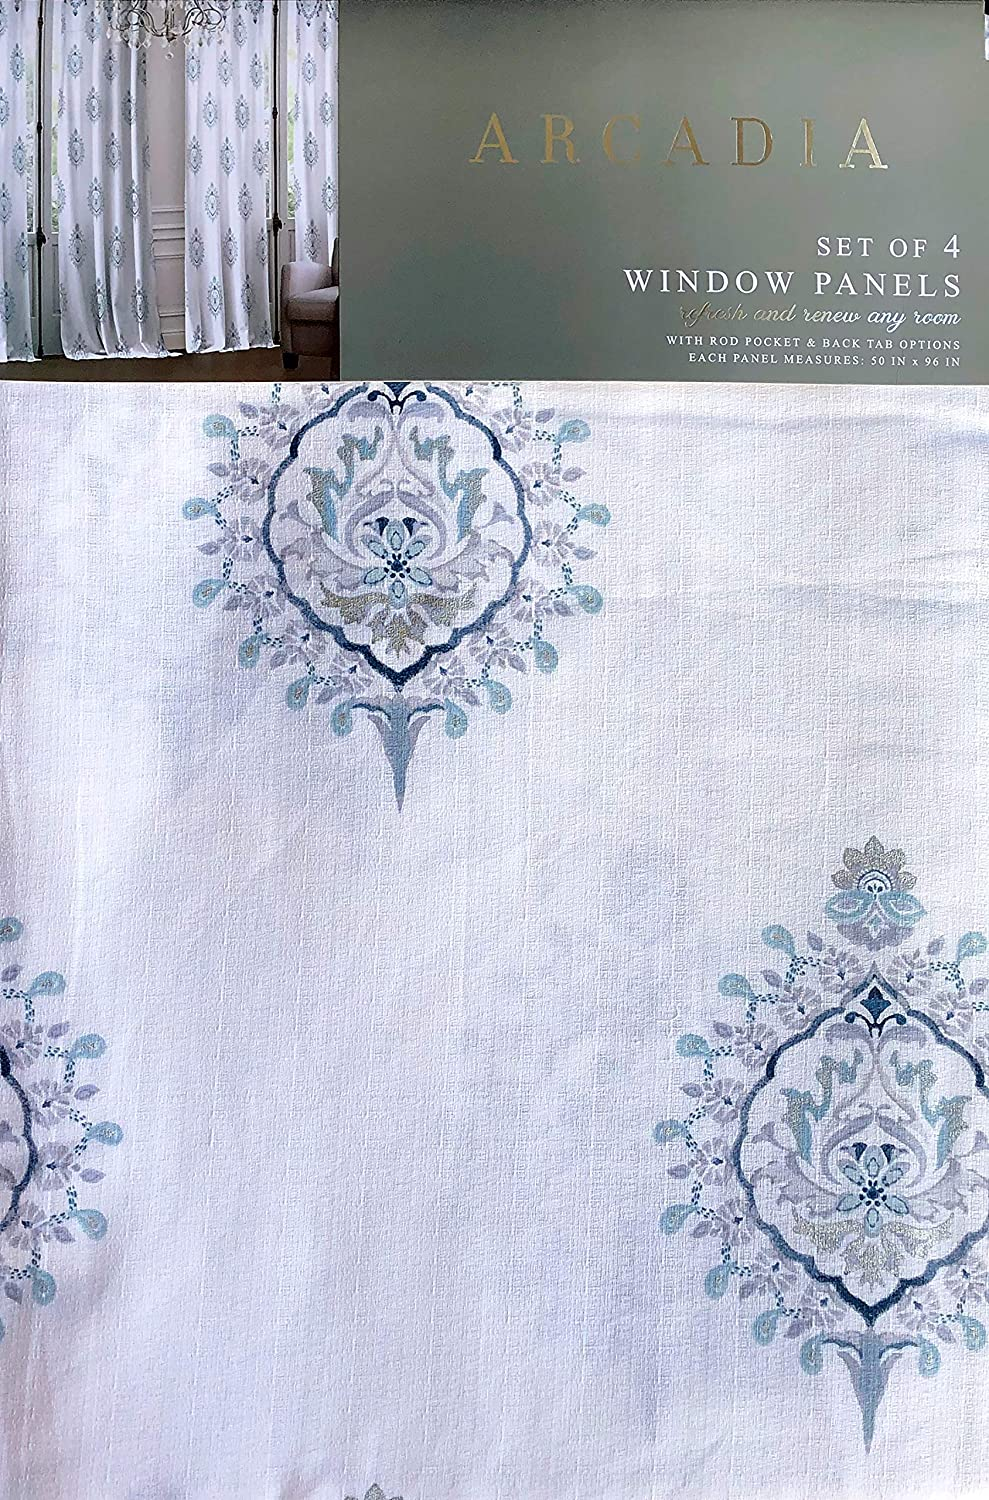 Arcadia Floating Medallions 4pc Window Curtains Set Light Blue Gray Silver Highlights on White Top Border Set of 4 Panels Rod Pockets Back Tabs, Nabiha Spa Blue - 50 Inches by 96 Inches